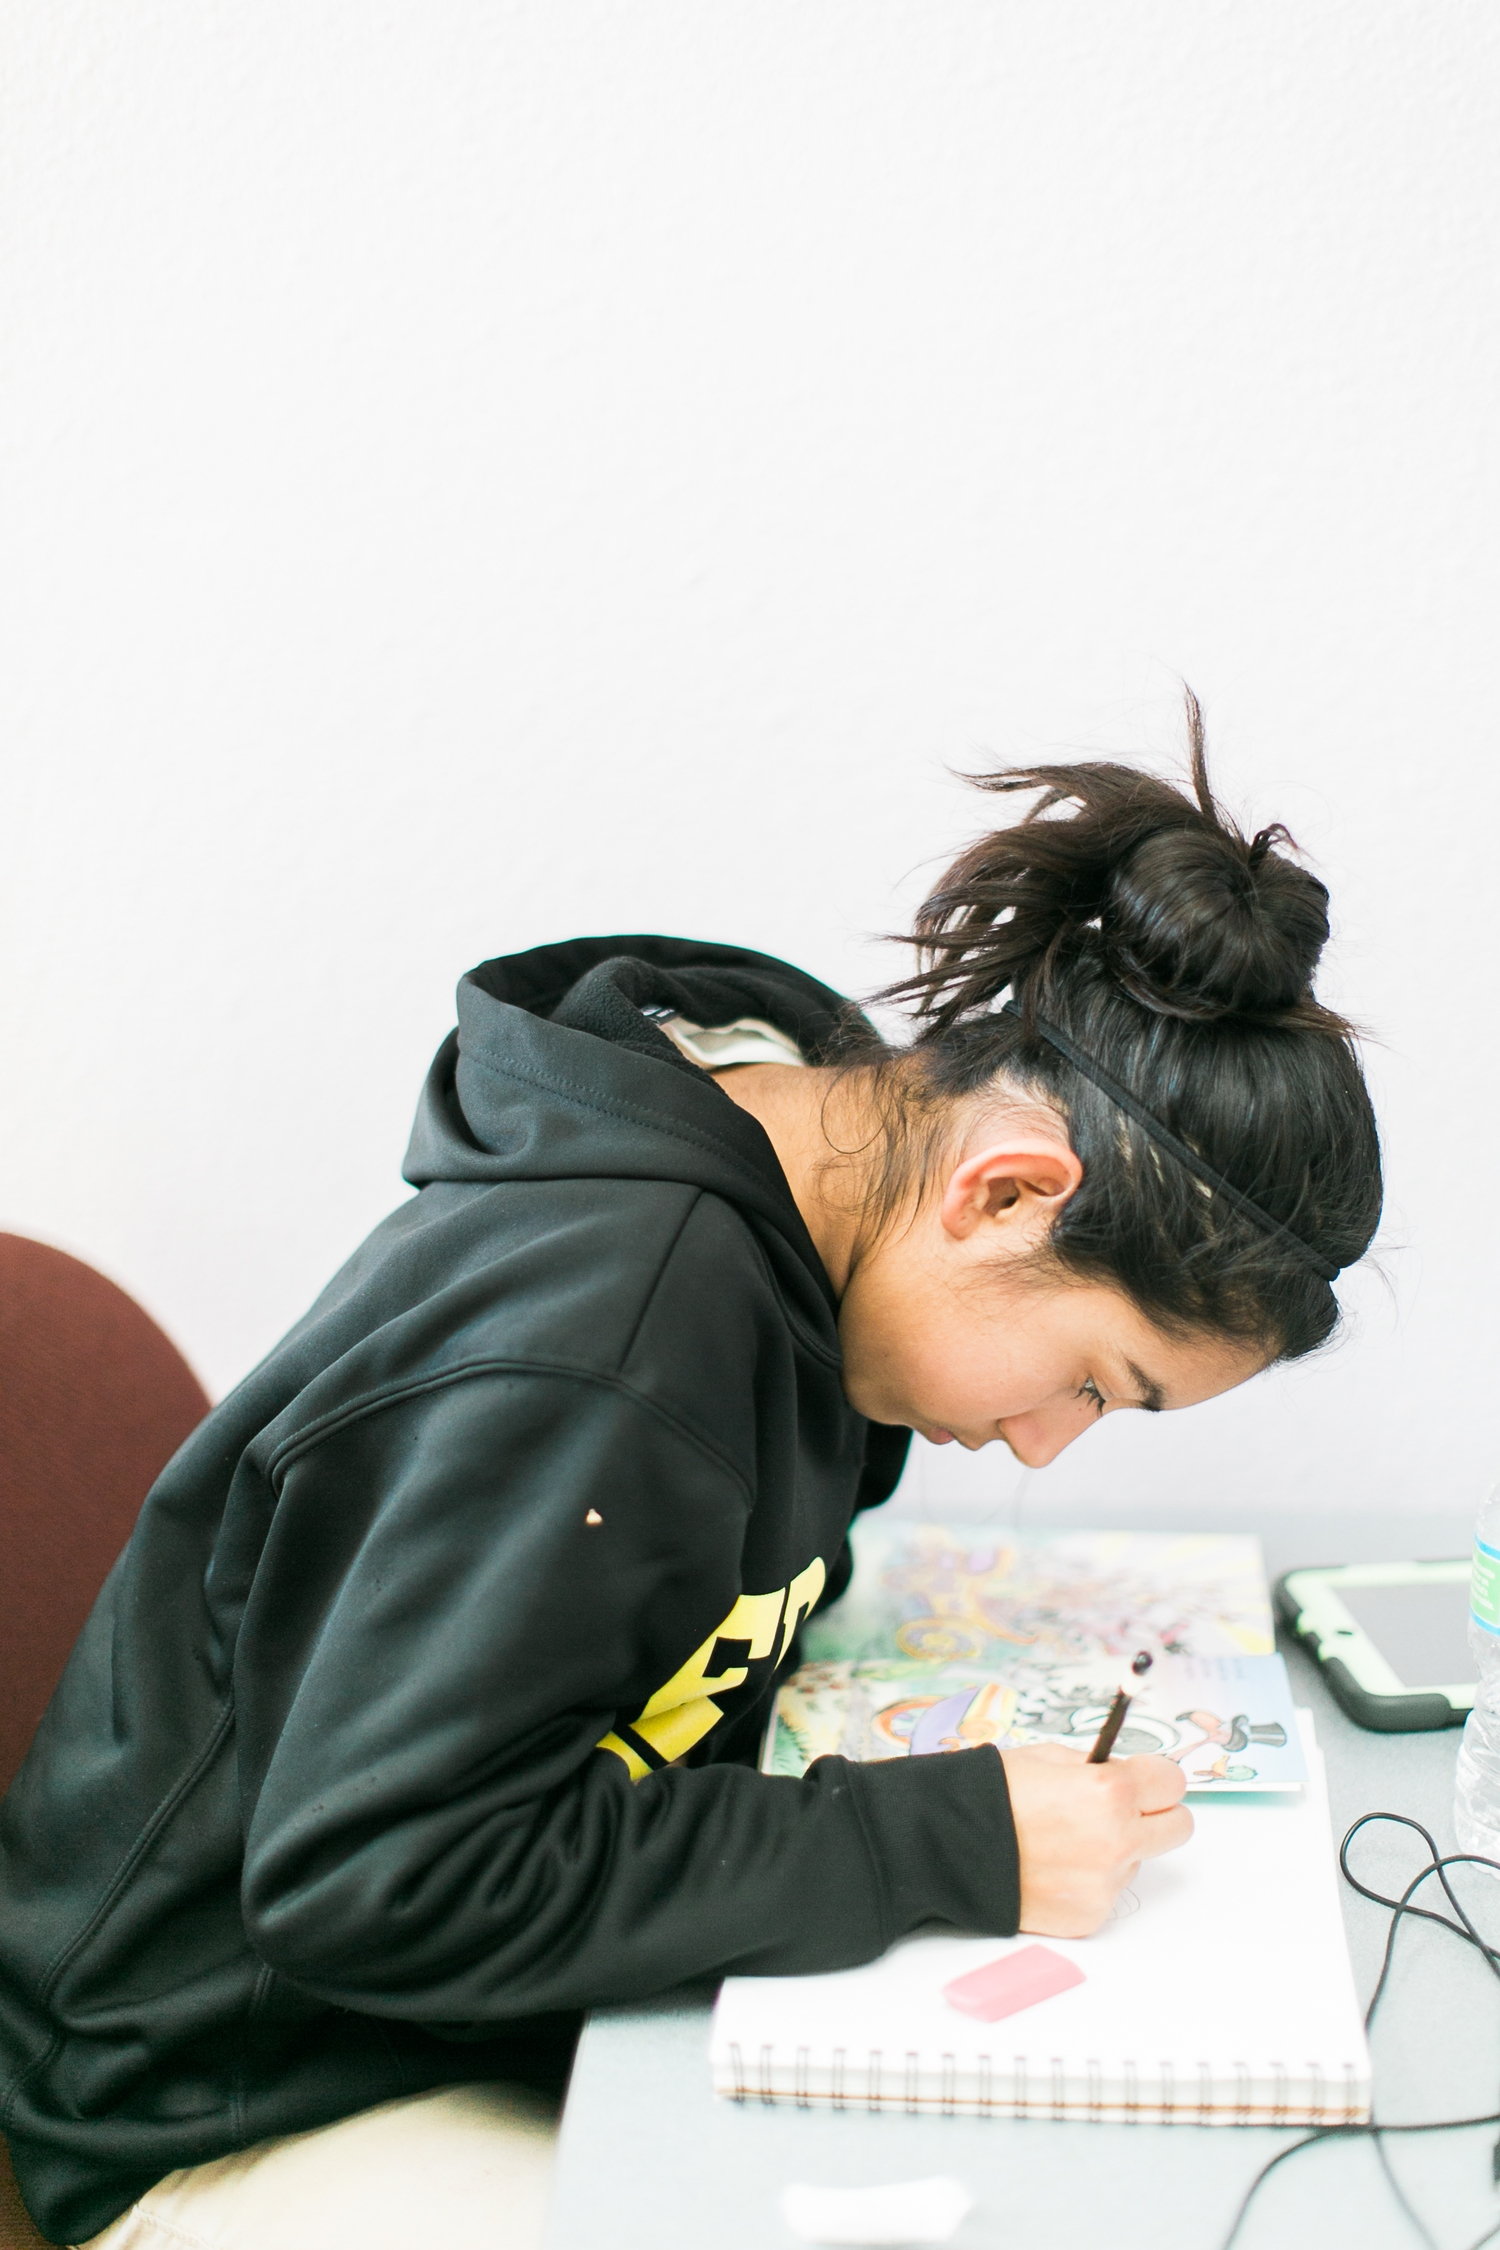 This youth meets with Sydney as she completes art homework.